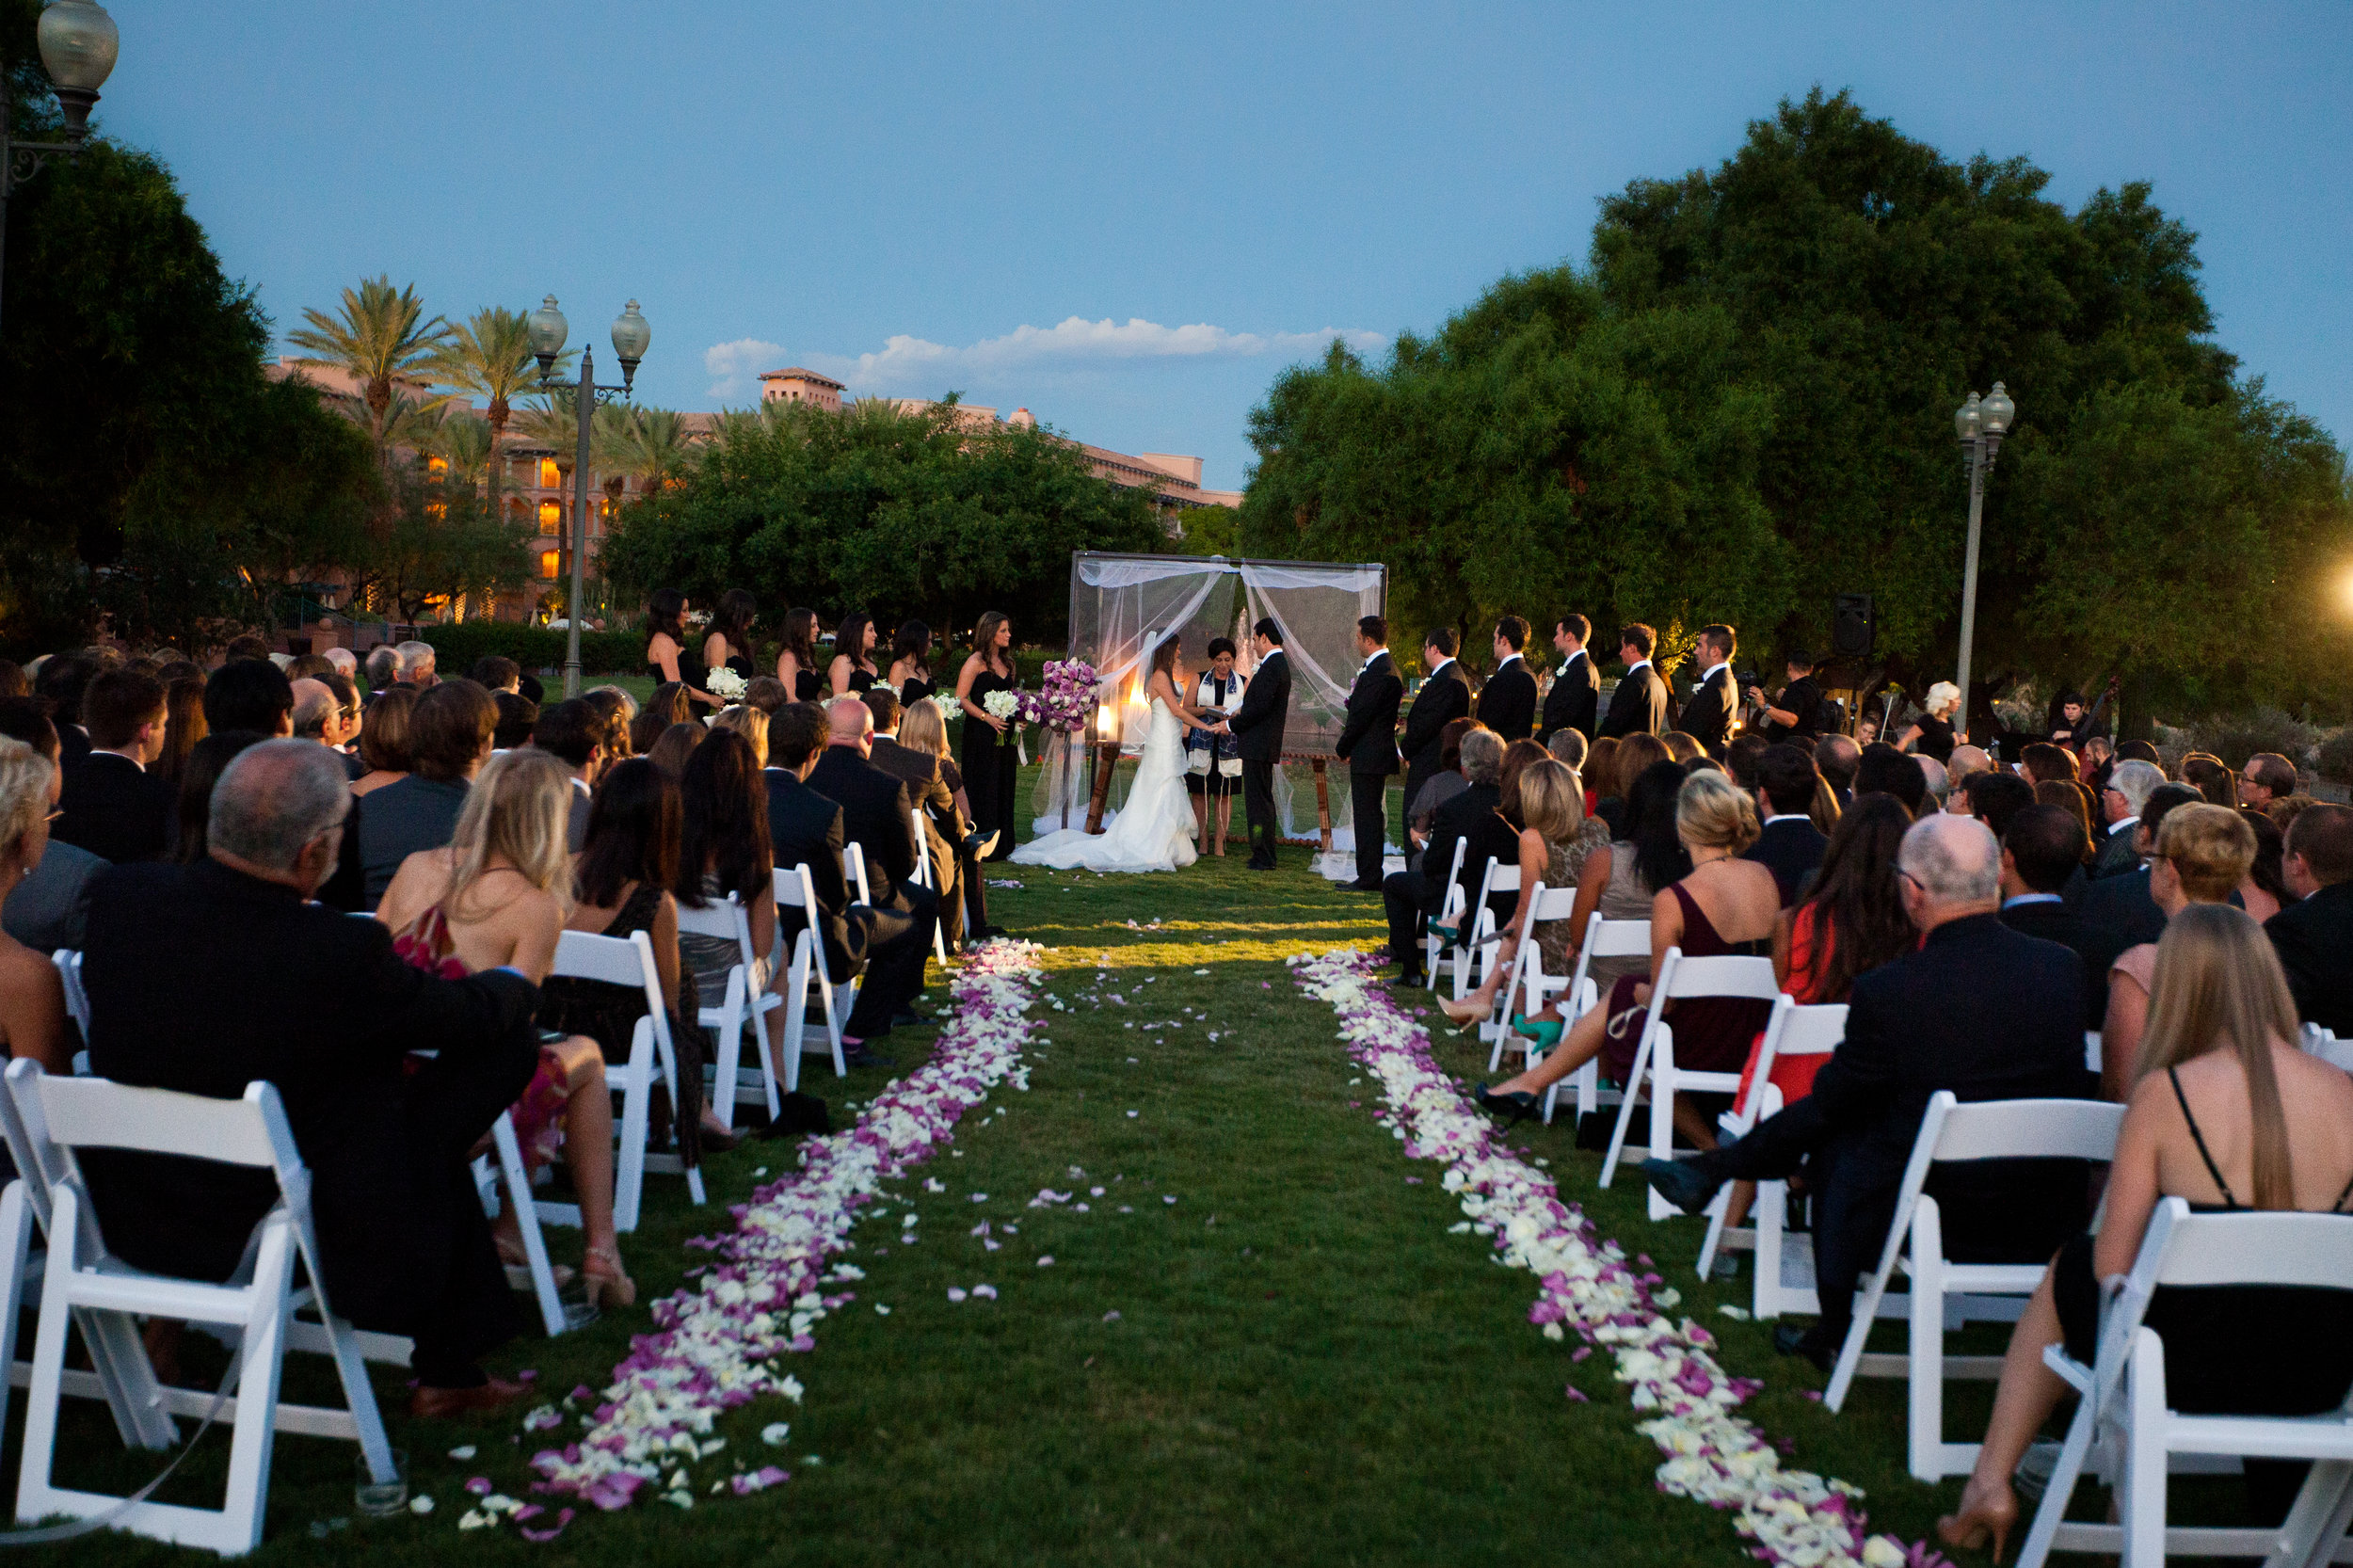 19 white wedding chairs bride and groom at alter purple and white rose petals down aisle ceremony in the evening Sergio Photography Life Design Events.JPG